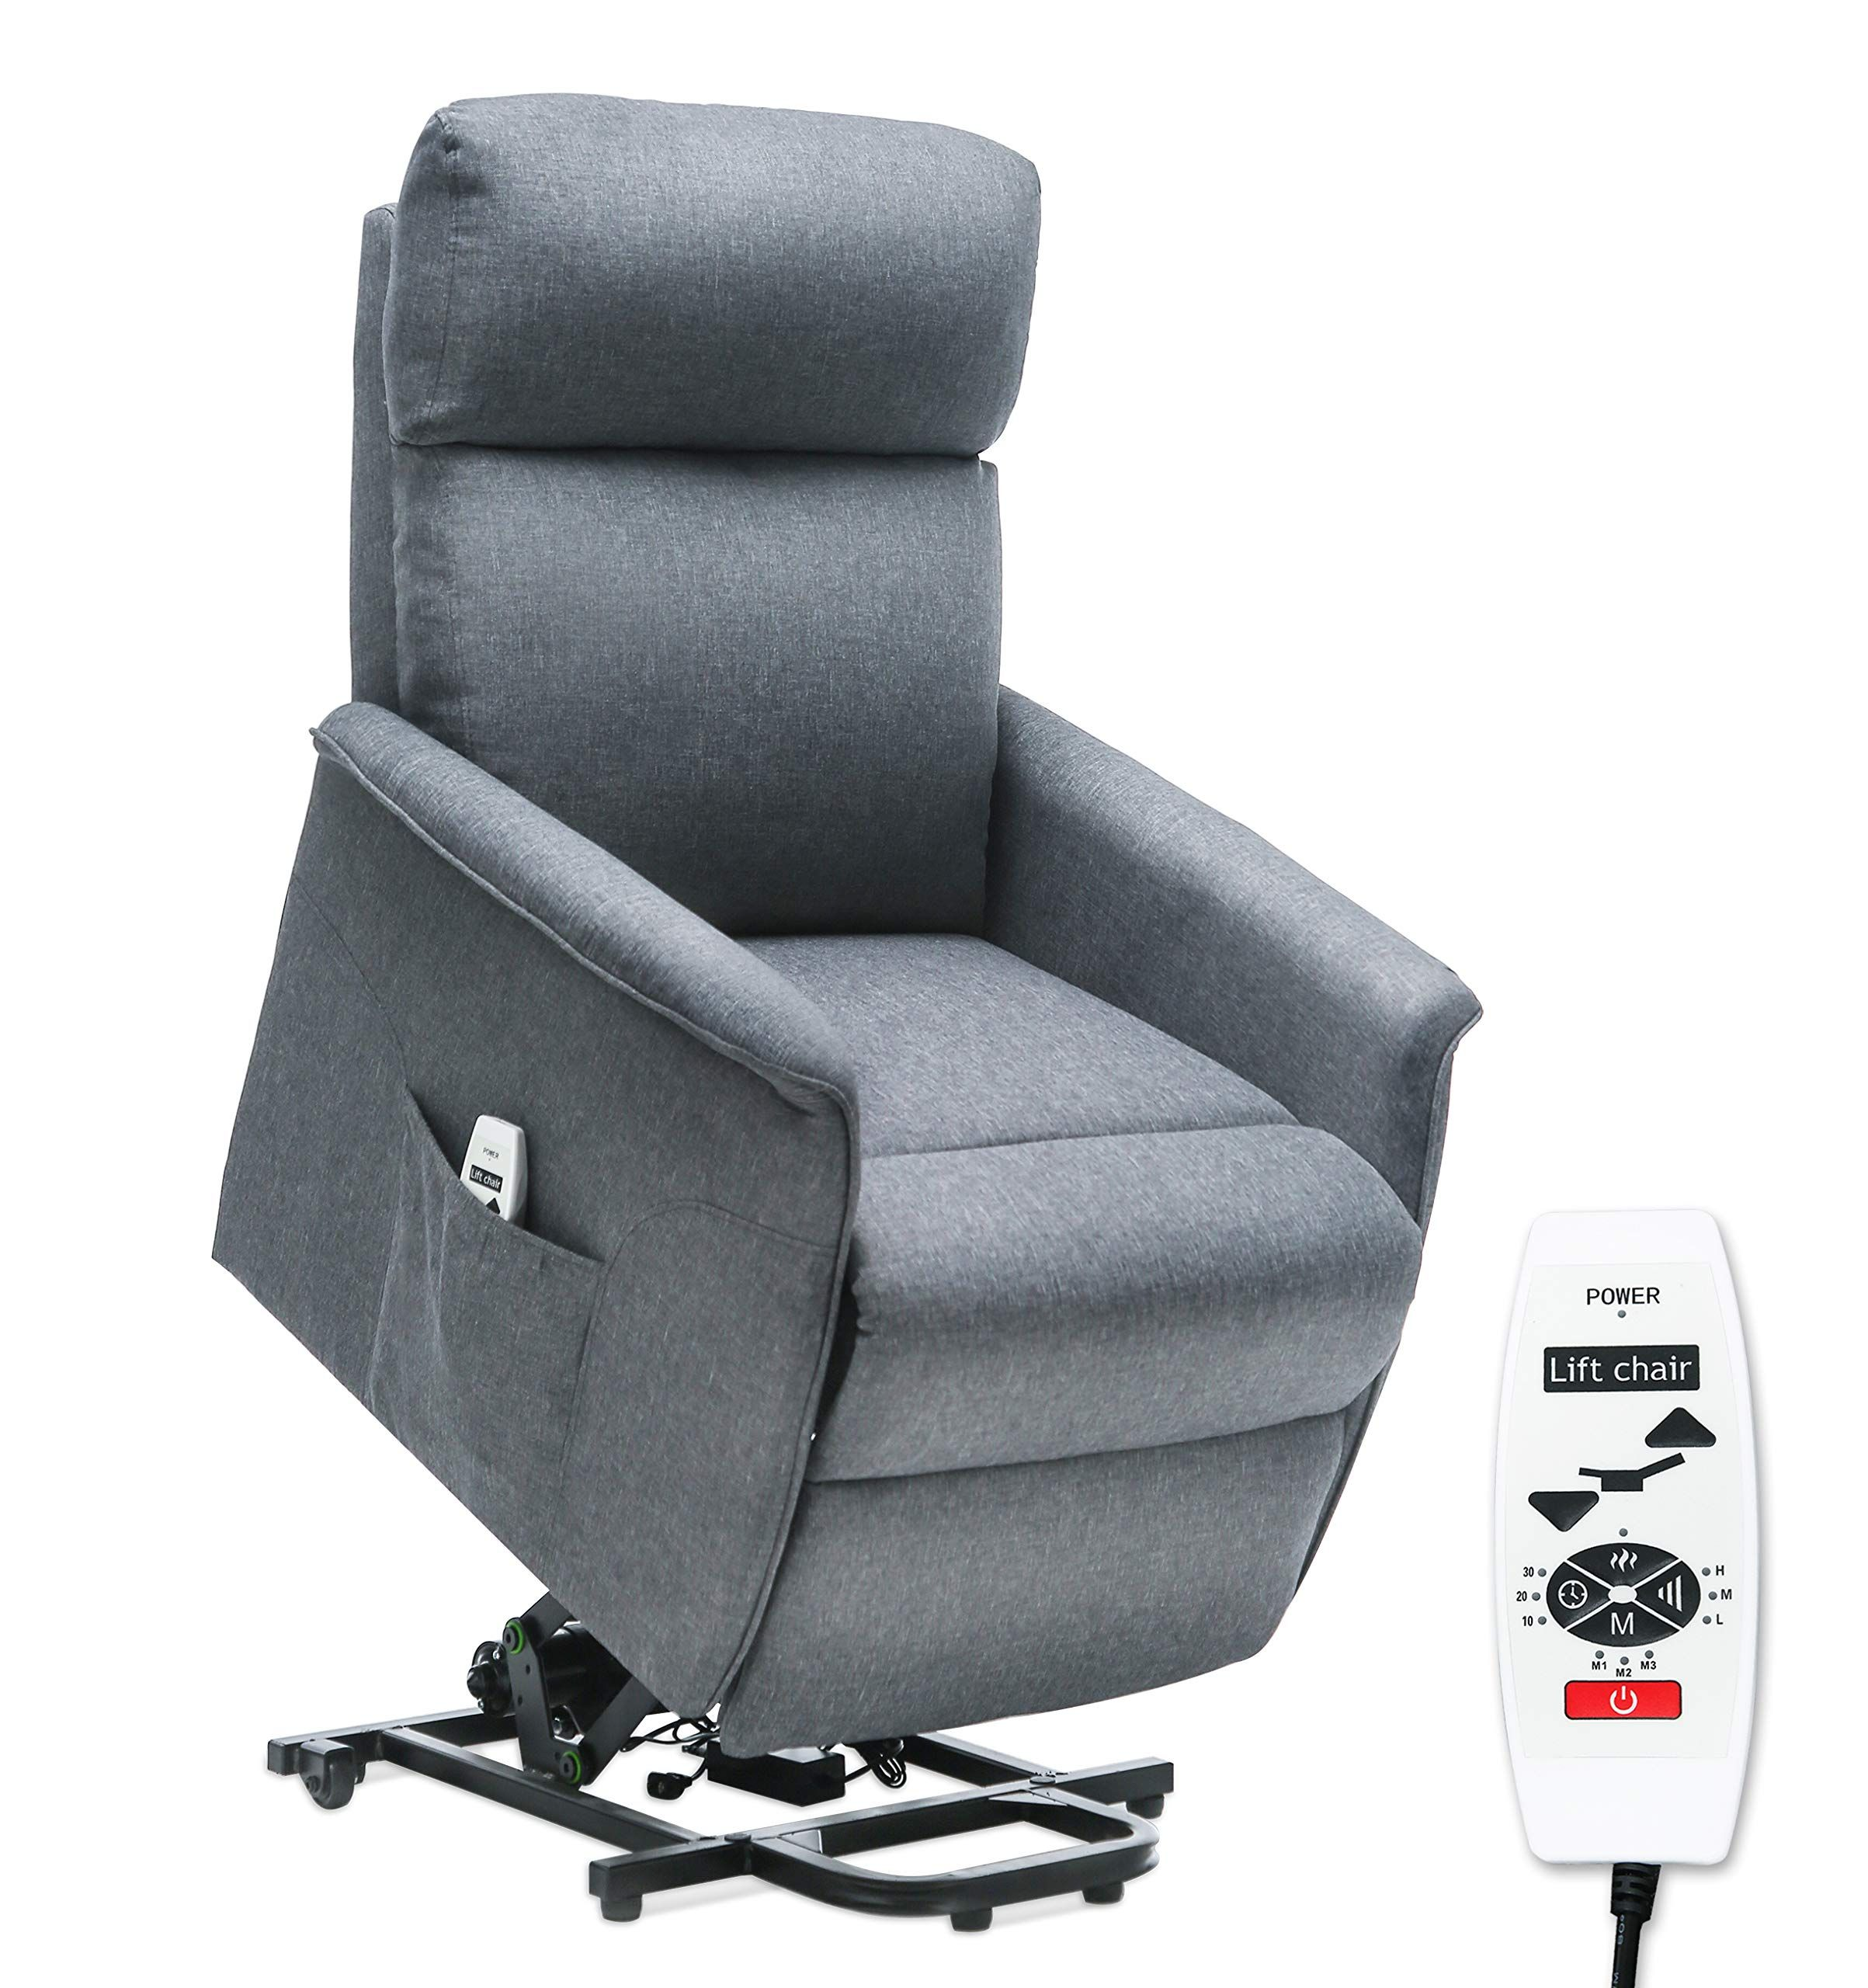 ERGOREAL Electric Lift Chair for Elderly Infinite Position